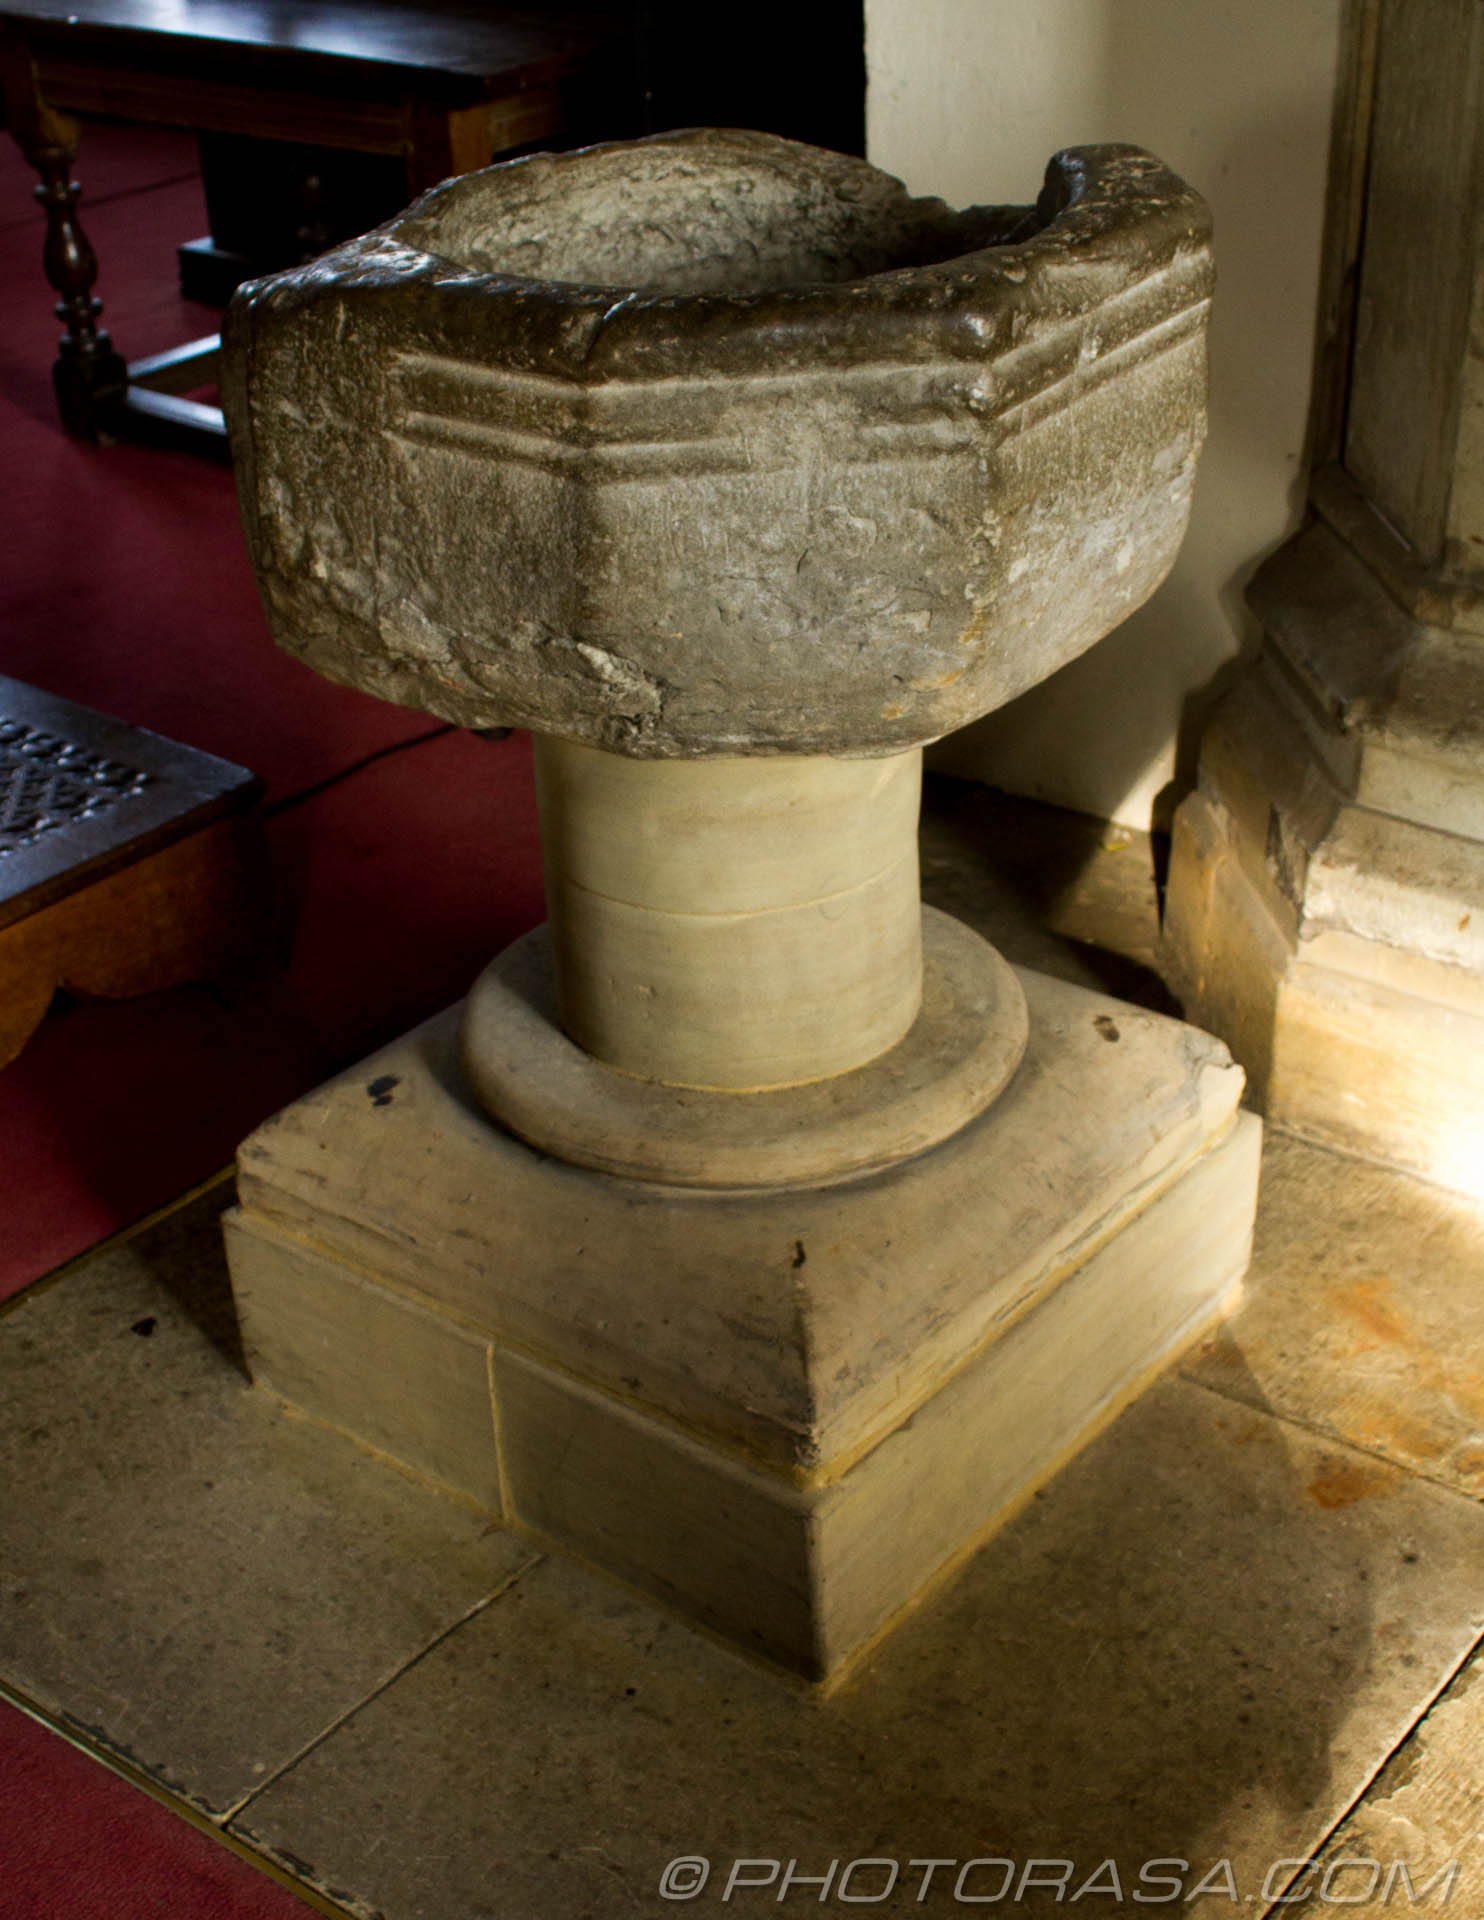 http://photorasa.com/saints-church-staplehurst-kent/medieval-font/